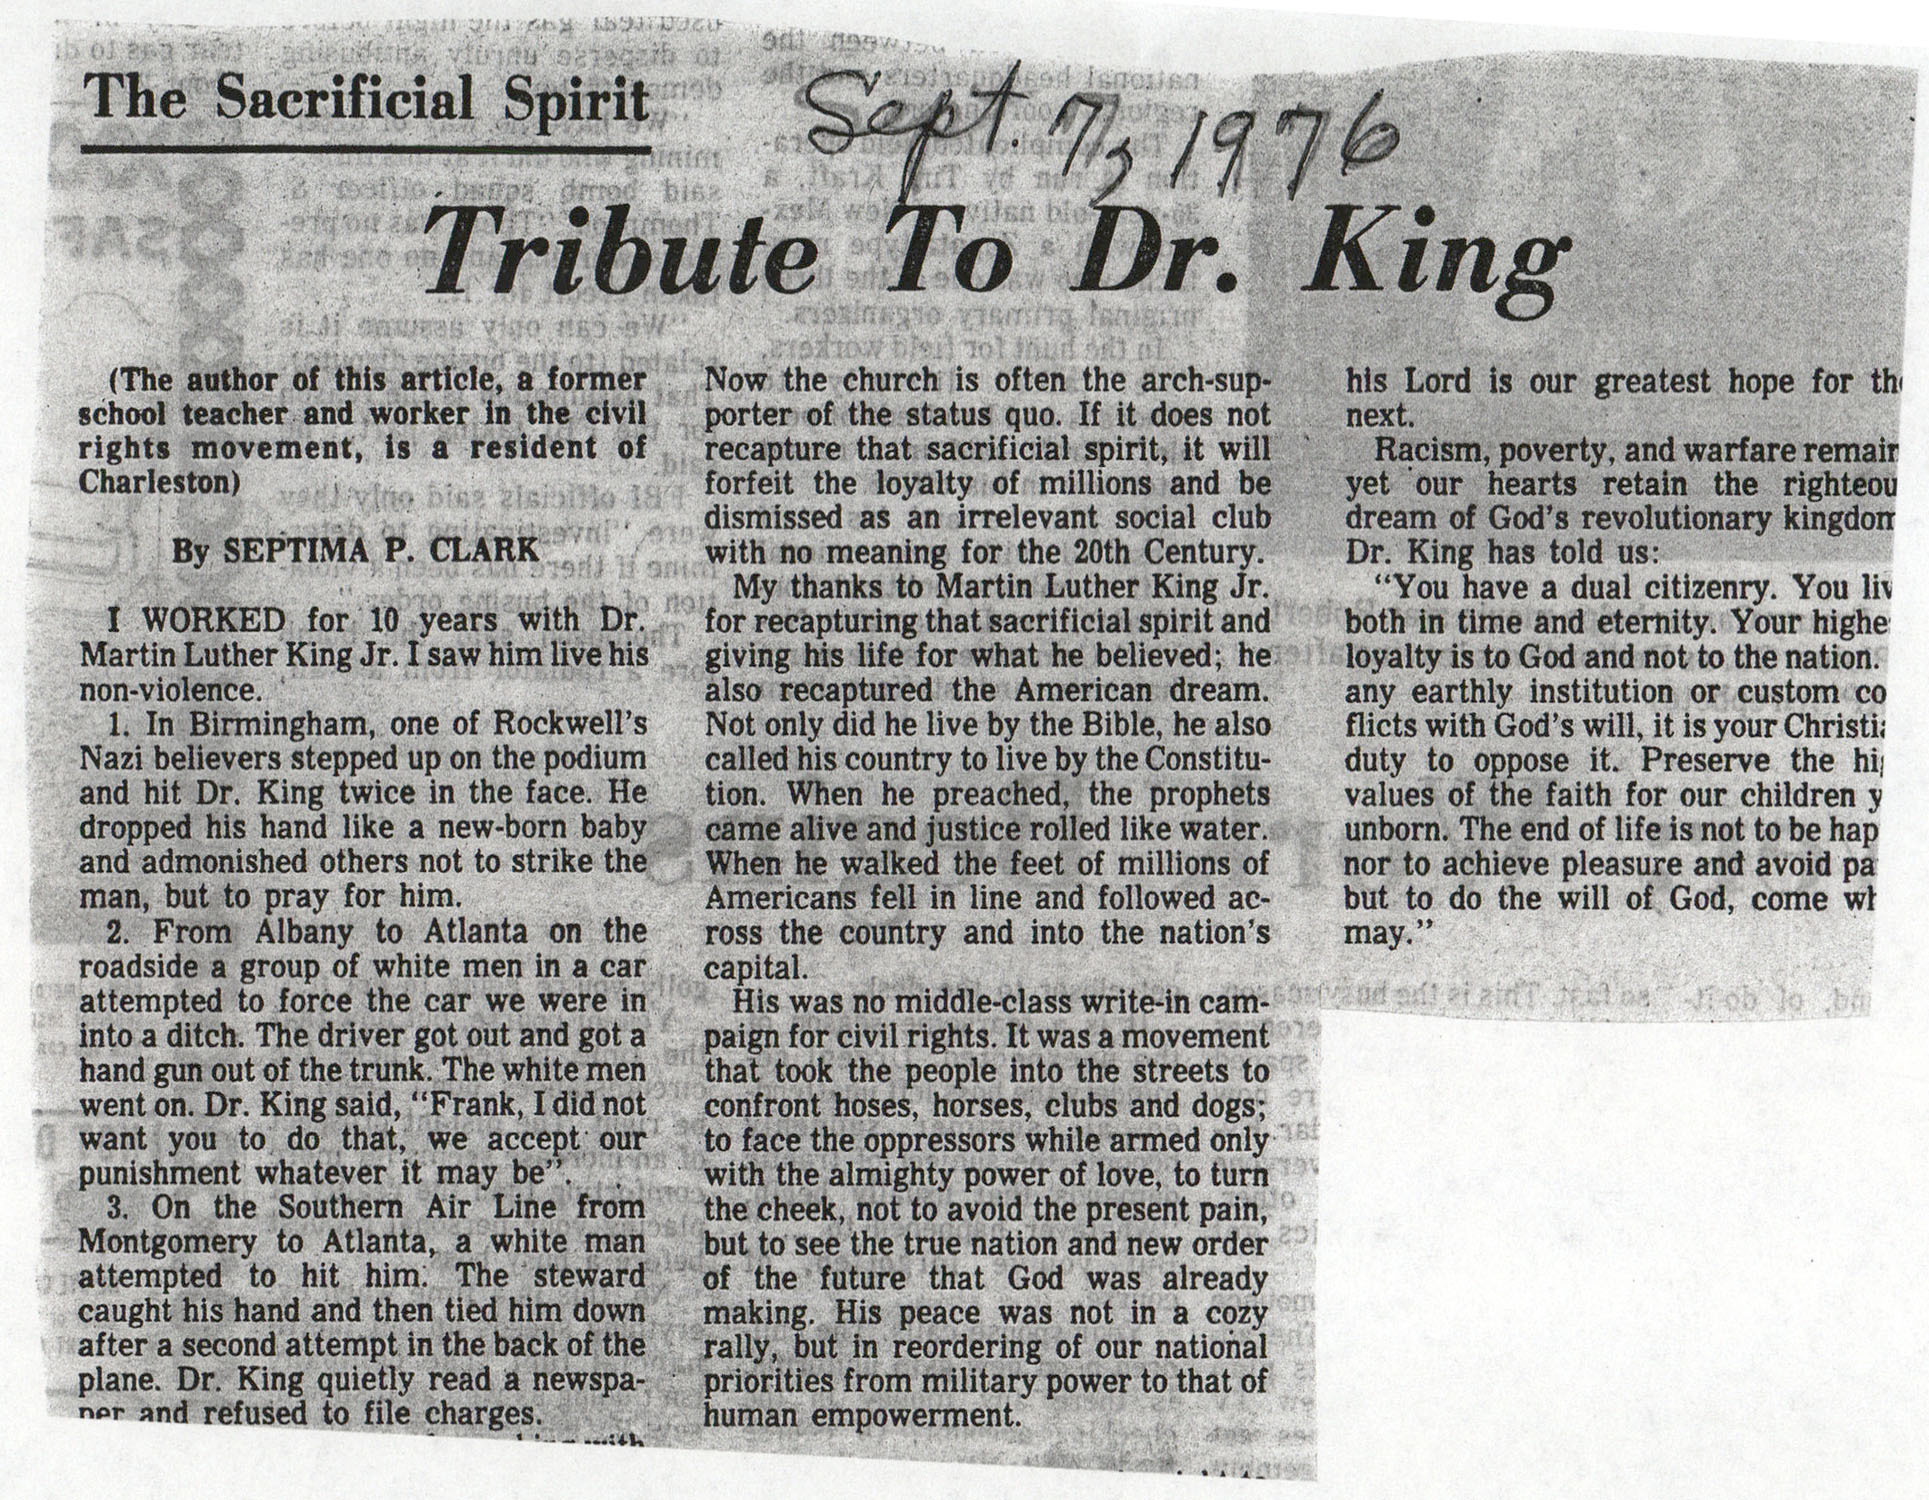 Newspaper Article, September 7, 1976